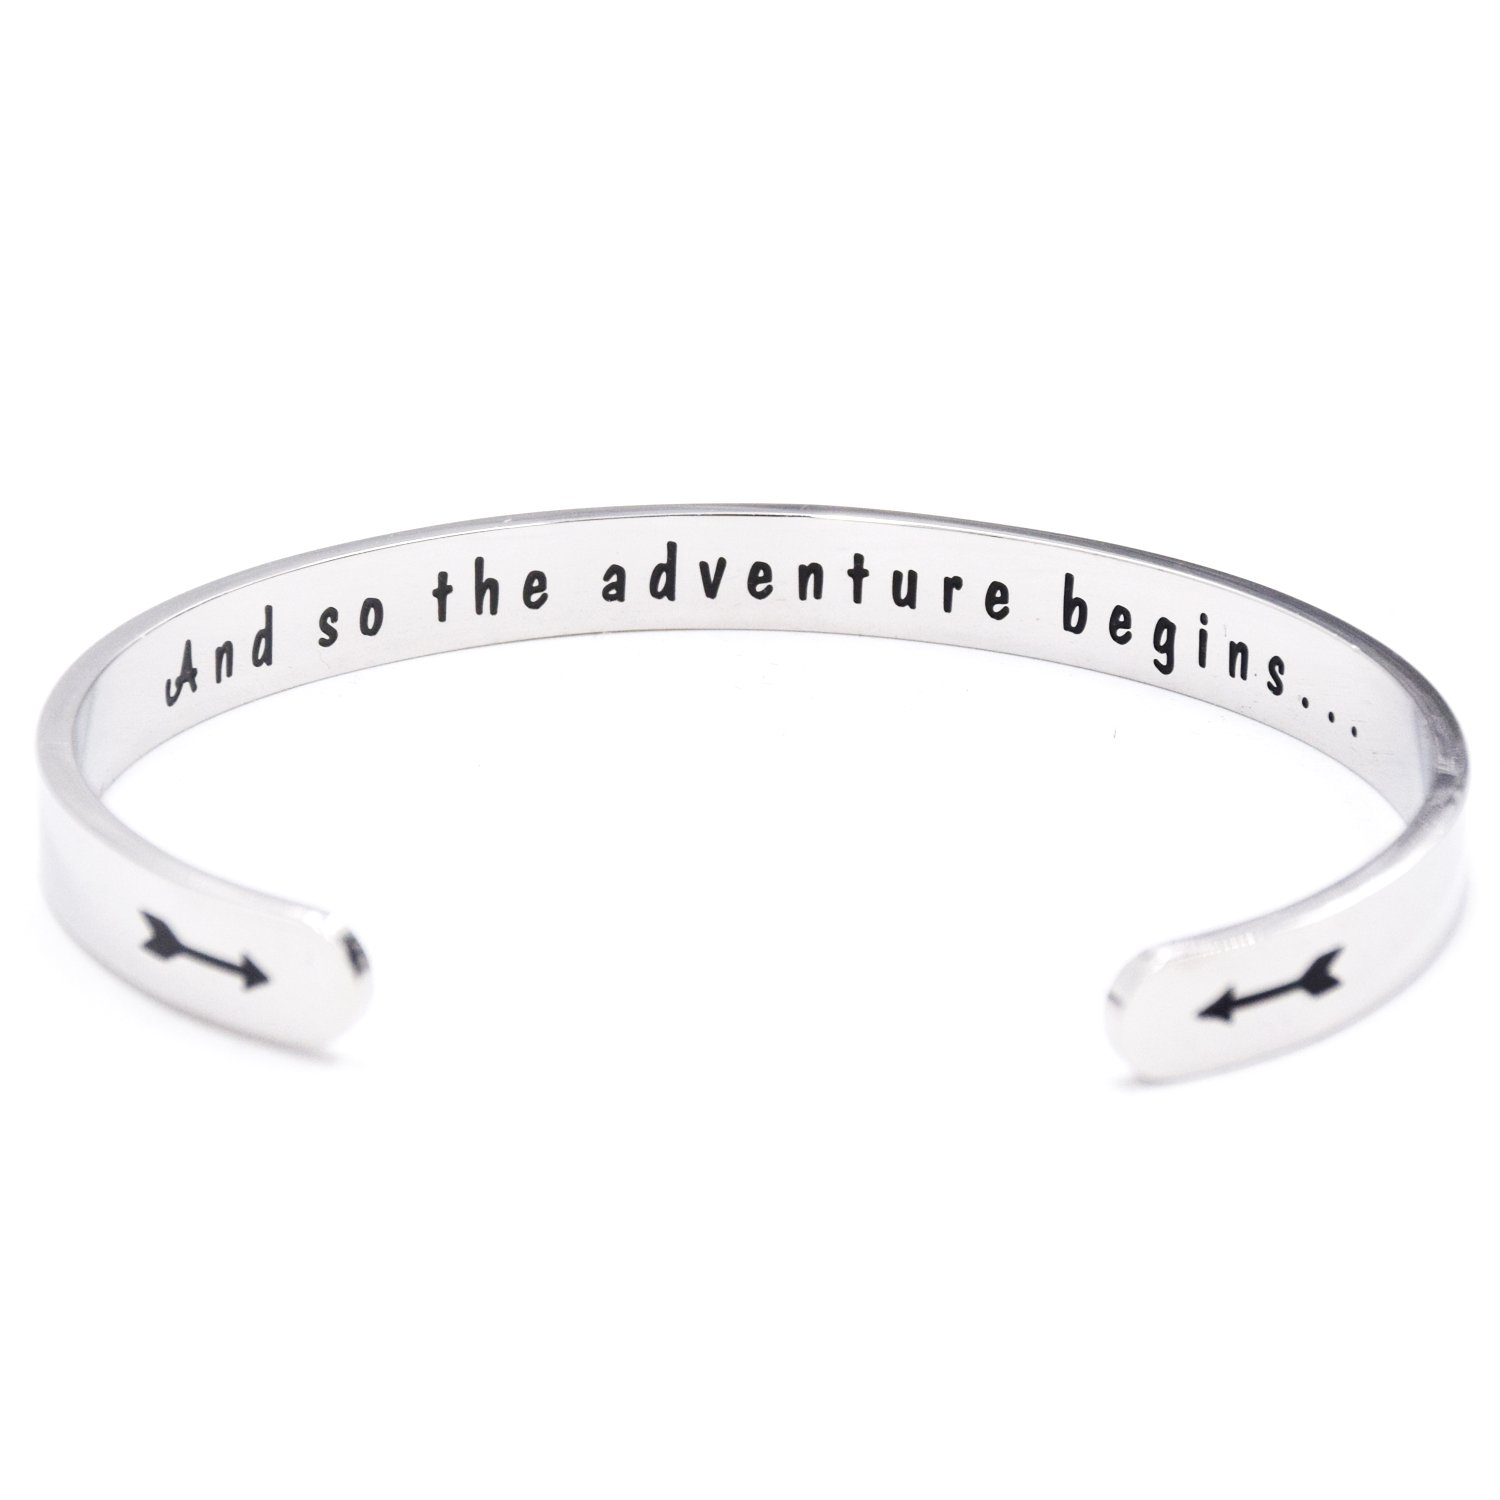 LParkin Class of 2018 2019 Gift And So the Adventure Begins Cuff Bracelet Graduation Gift (Cuff)